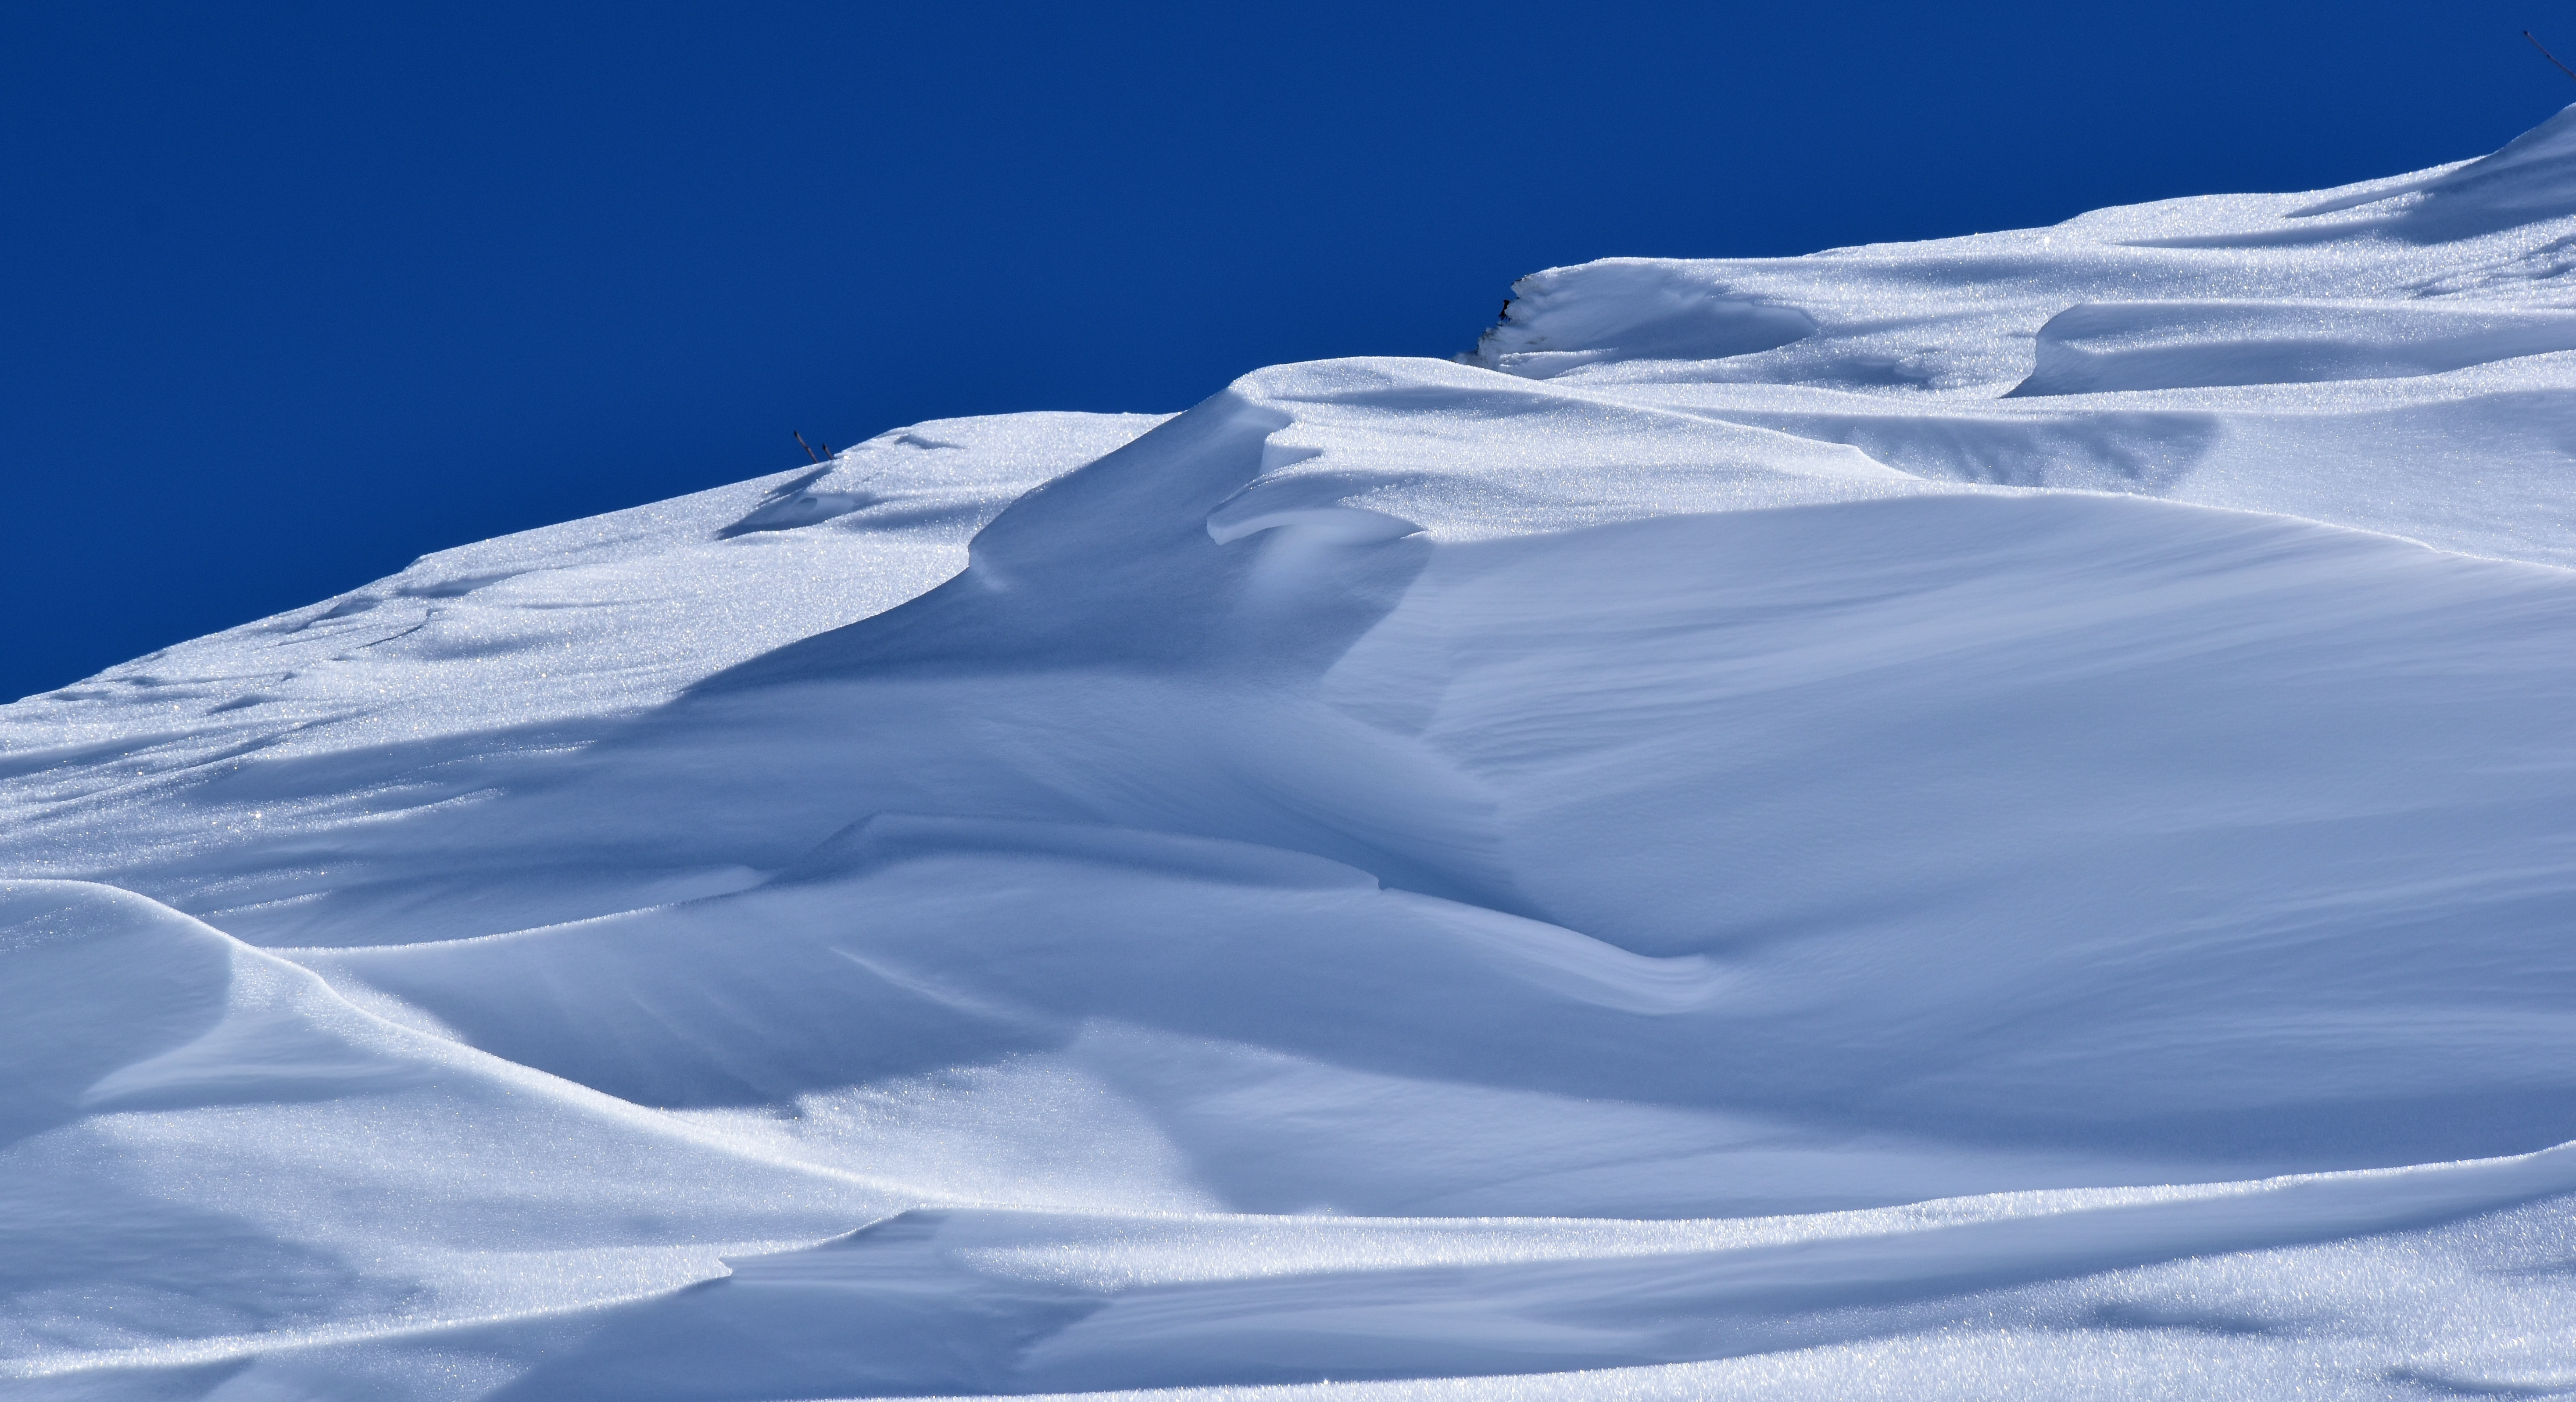 snow field during daytime